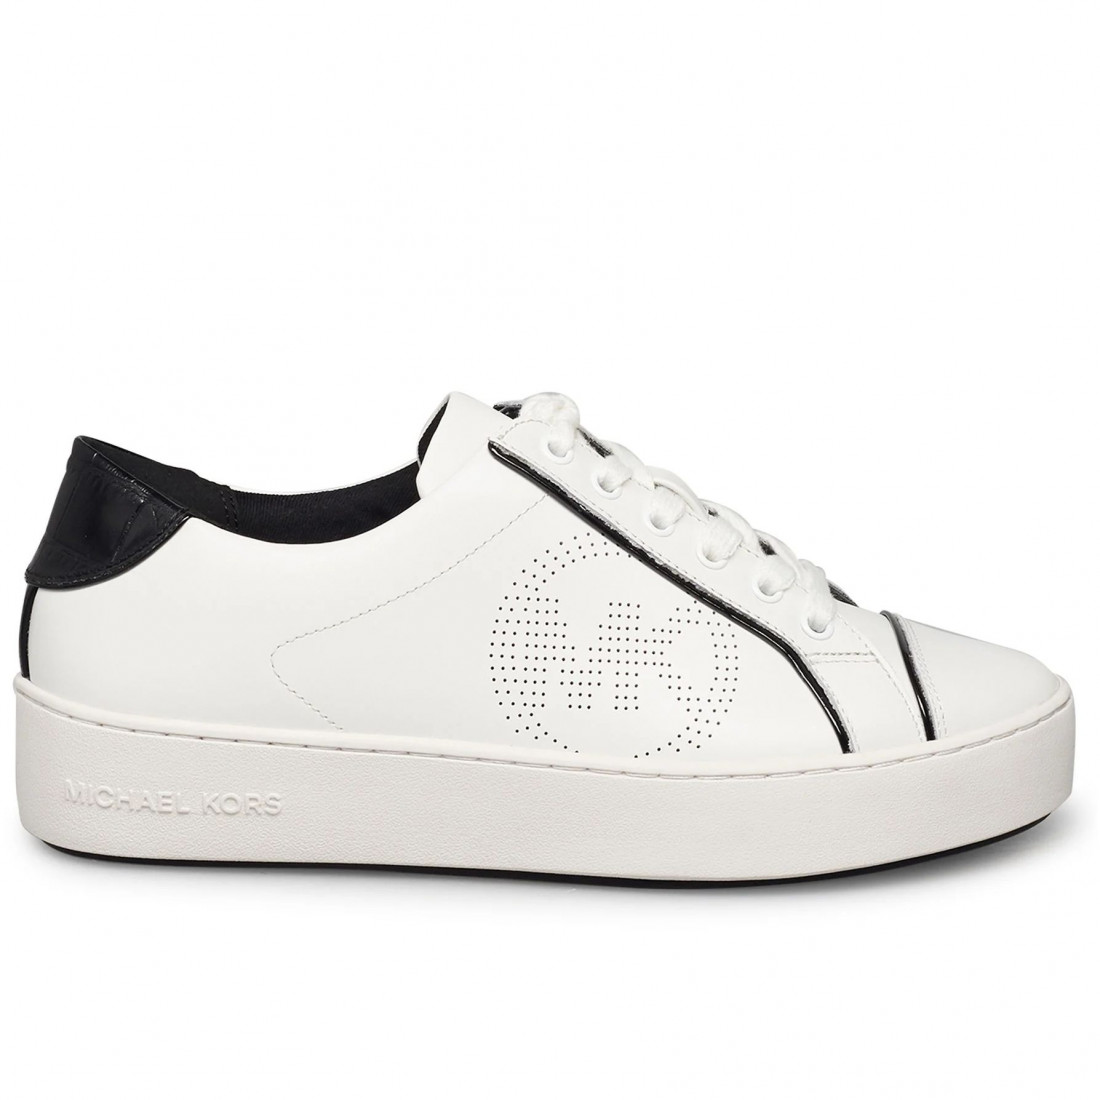 sneakers woman michael kors 43t0kbfs6l001 7522